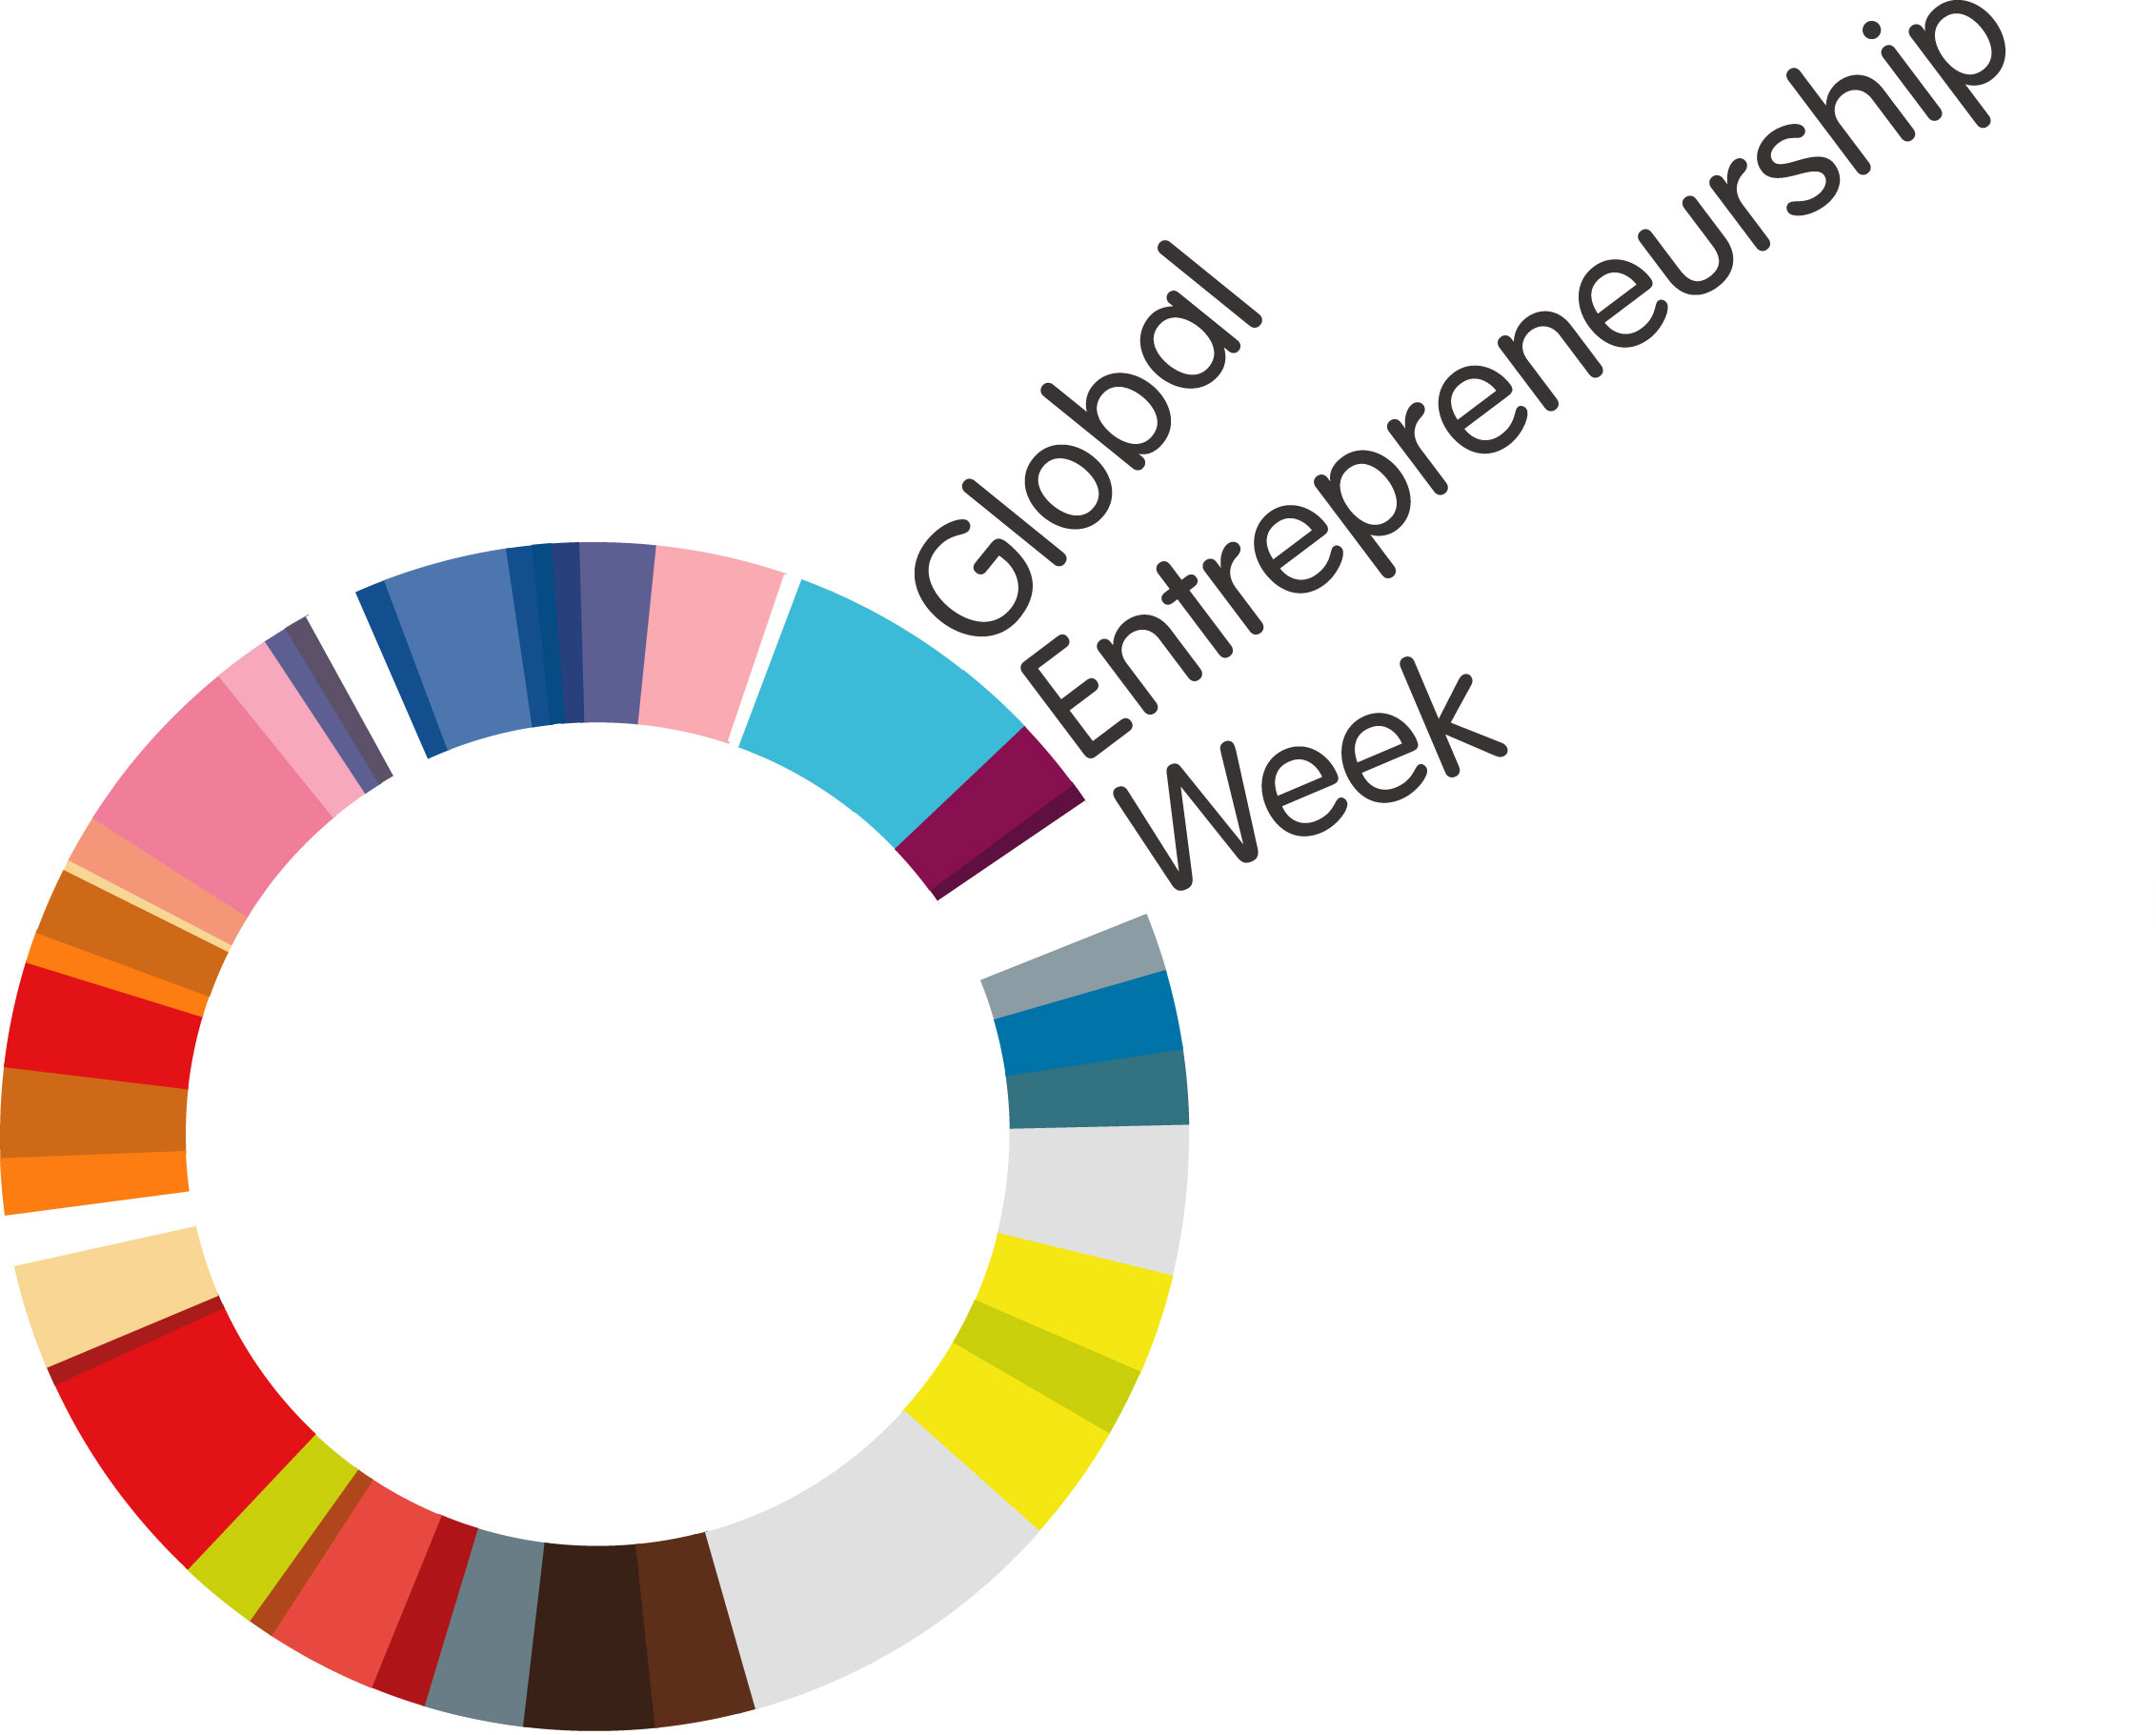 Global Entrepreneurship Week: What's going on?